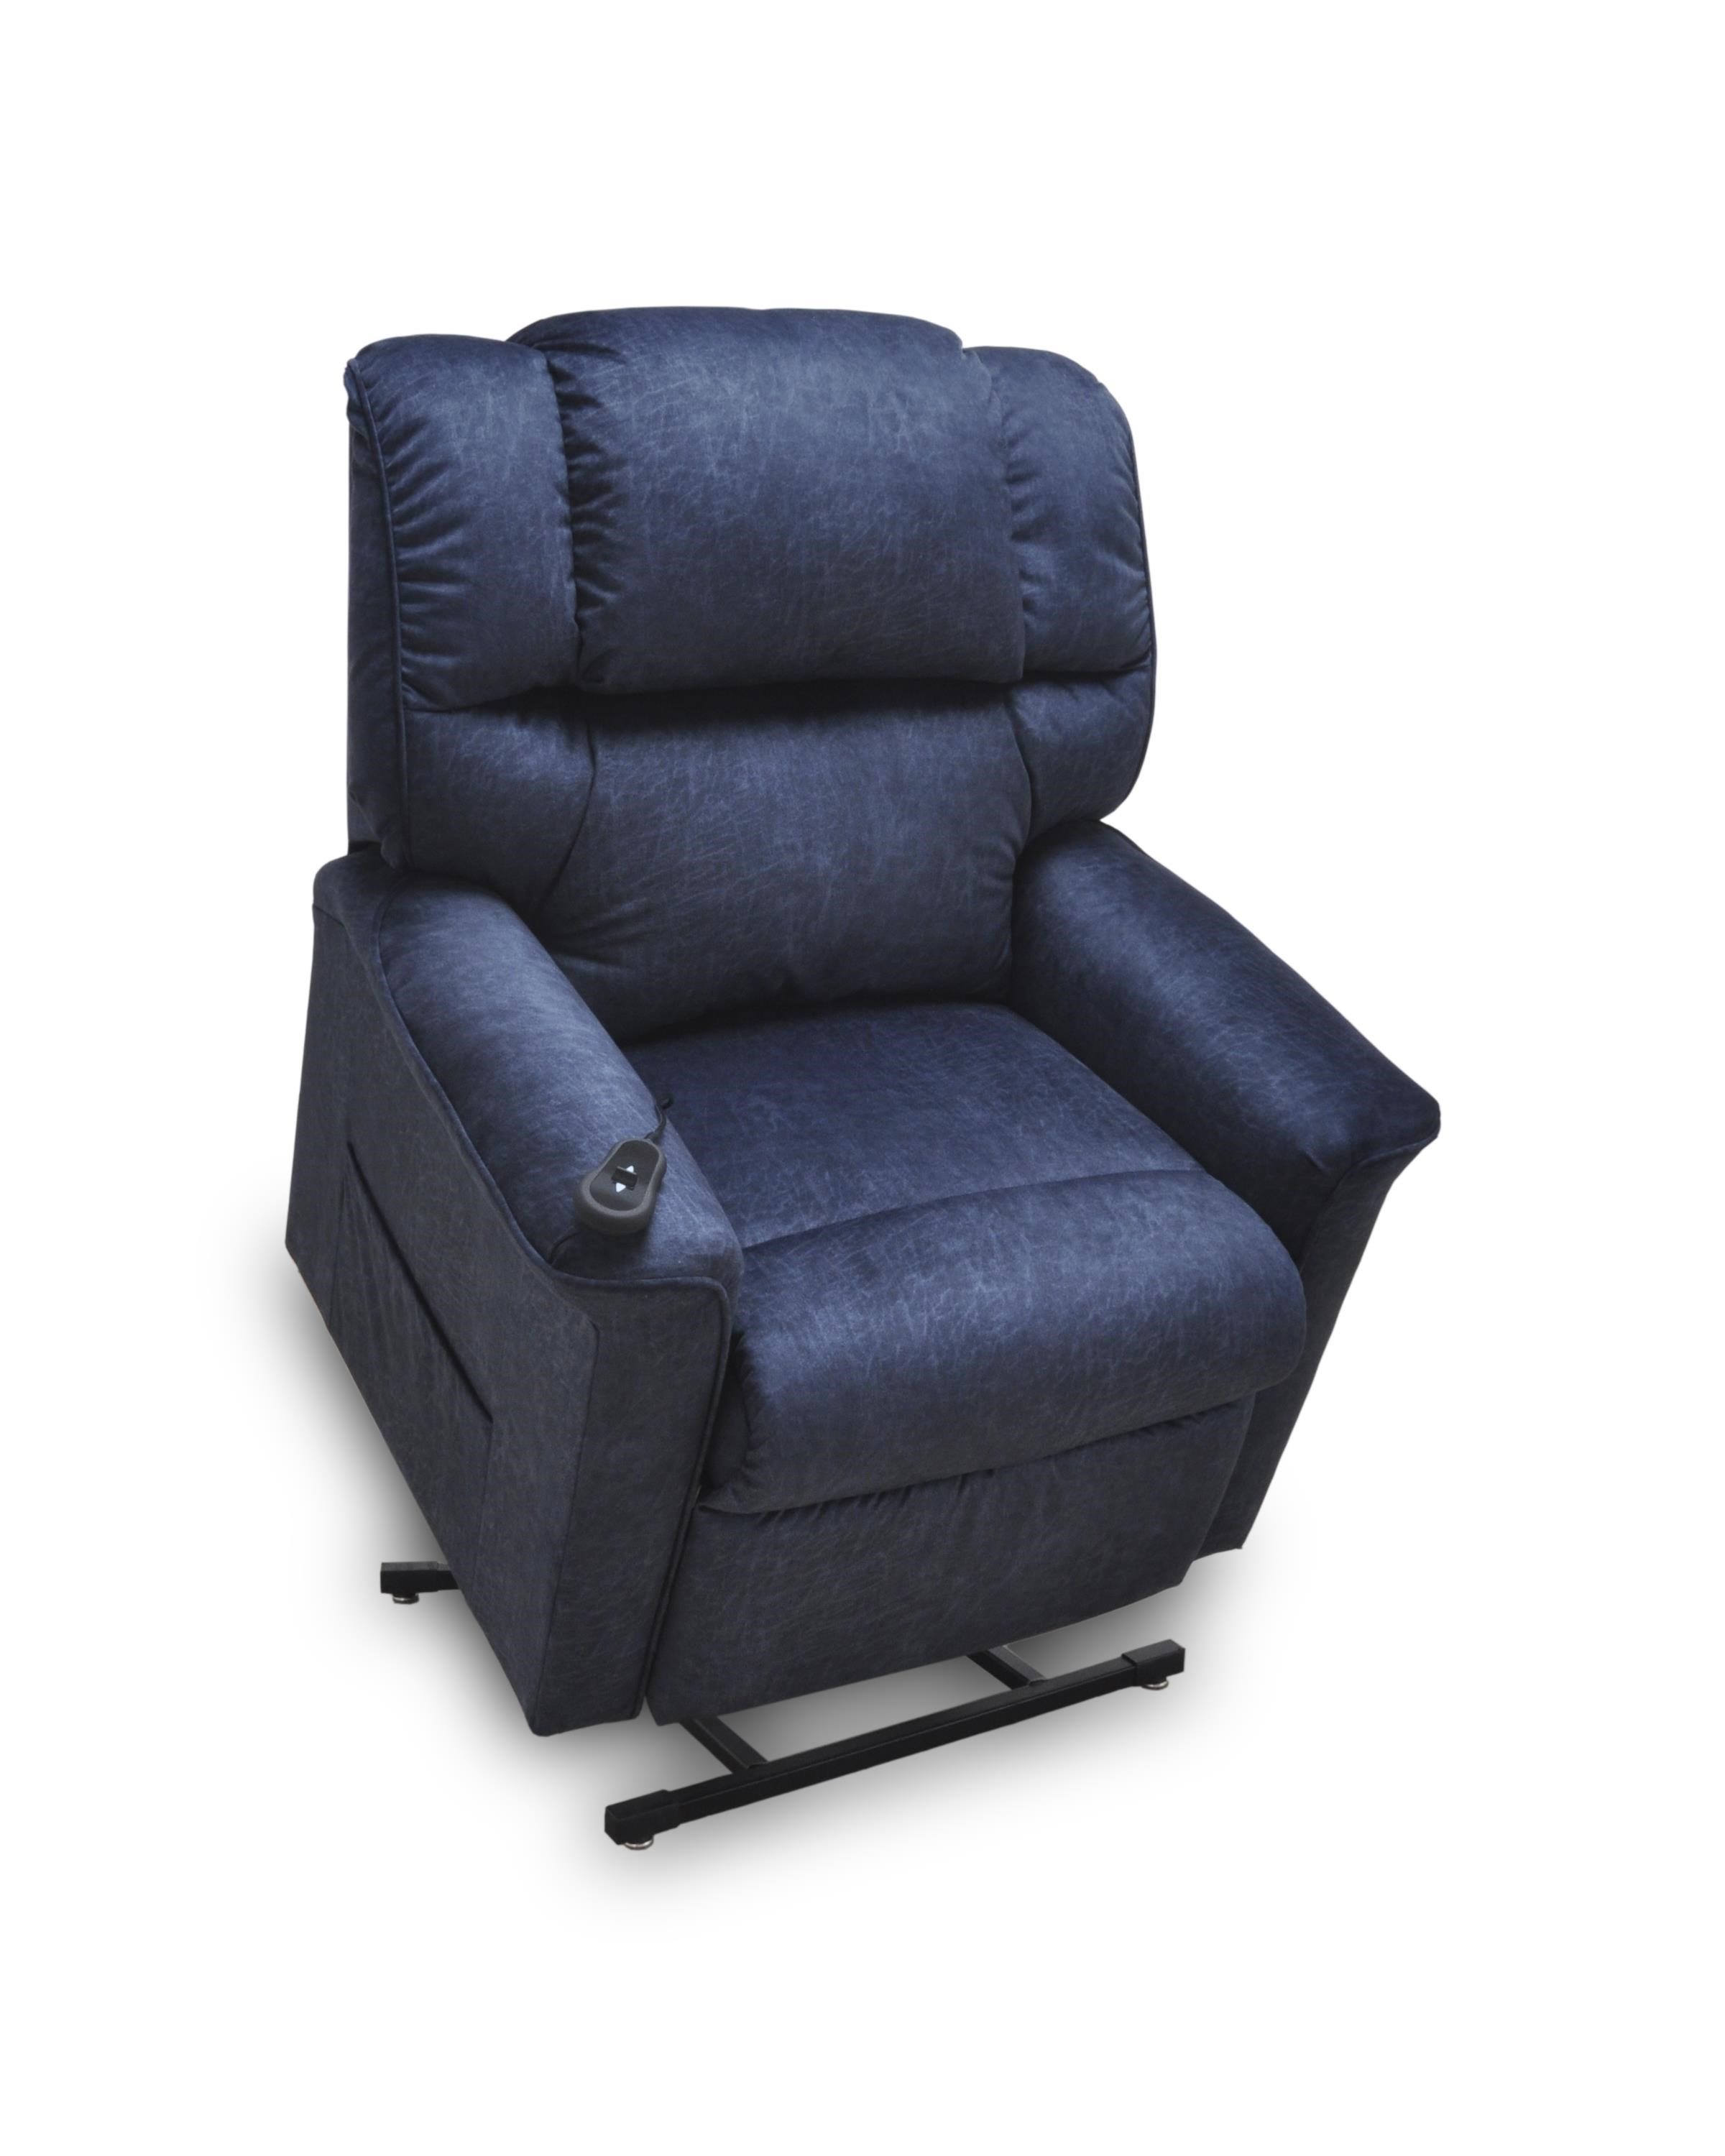 Franklin Lift and Power Recliners 485161415 Oscar Lift